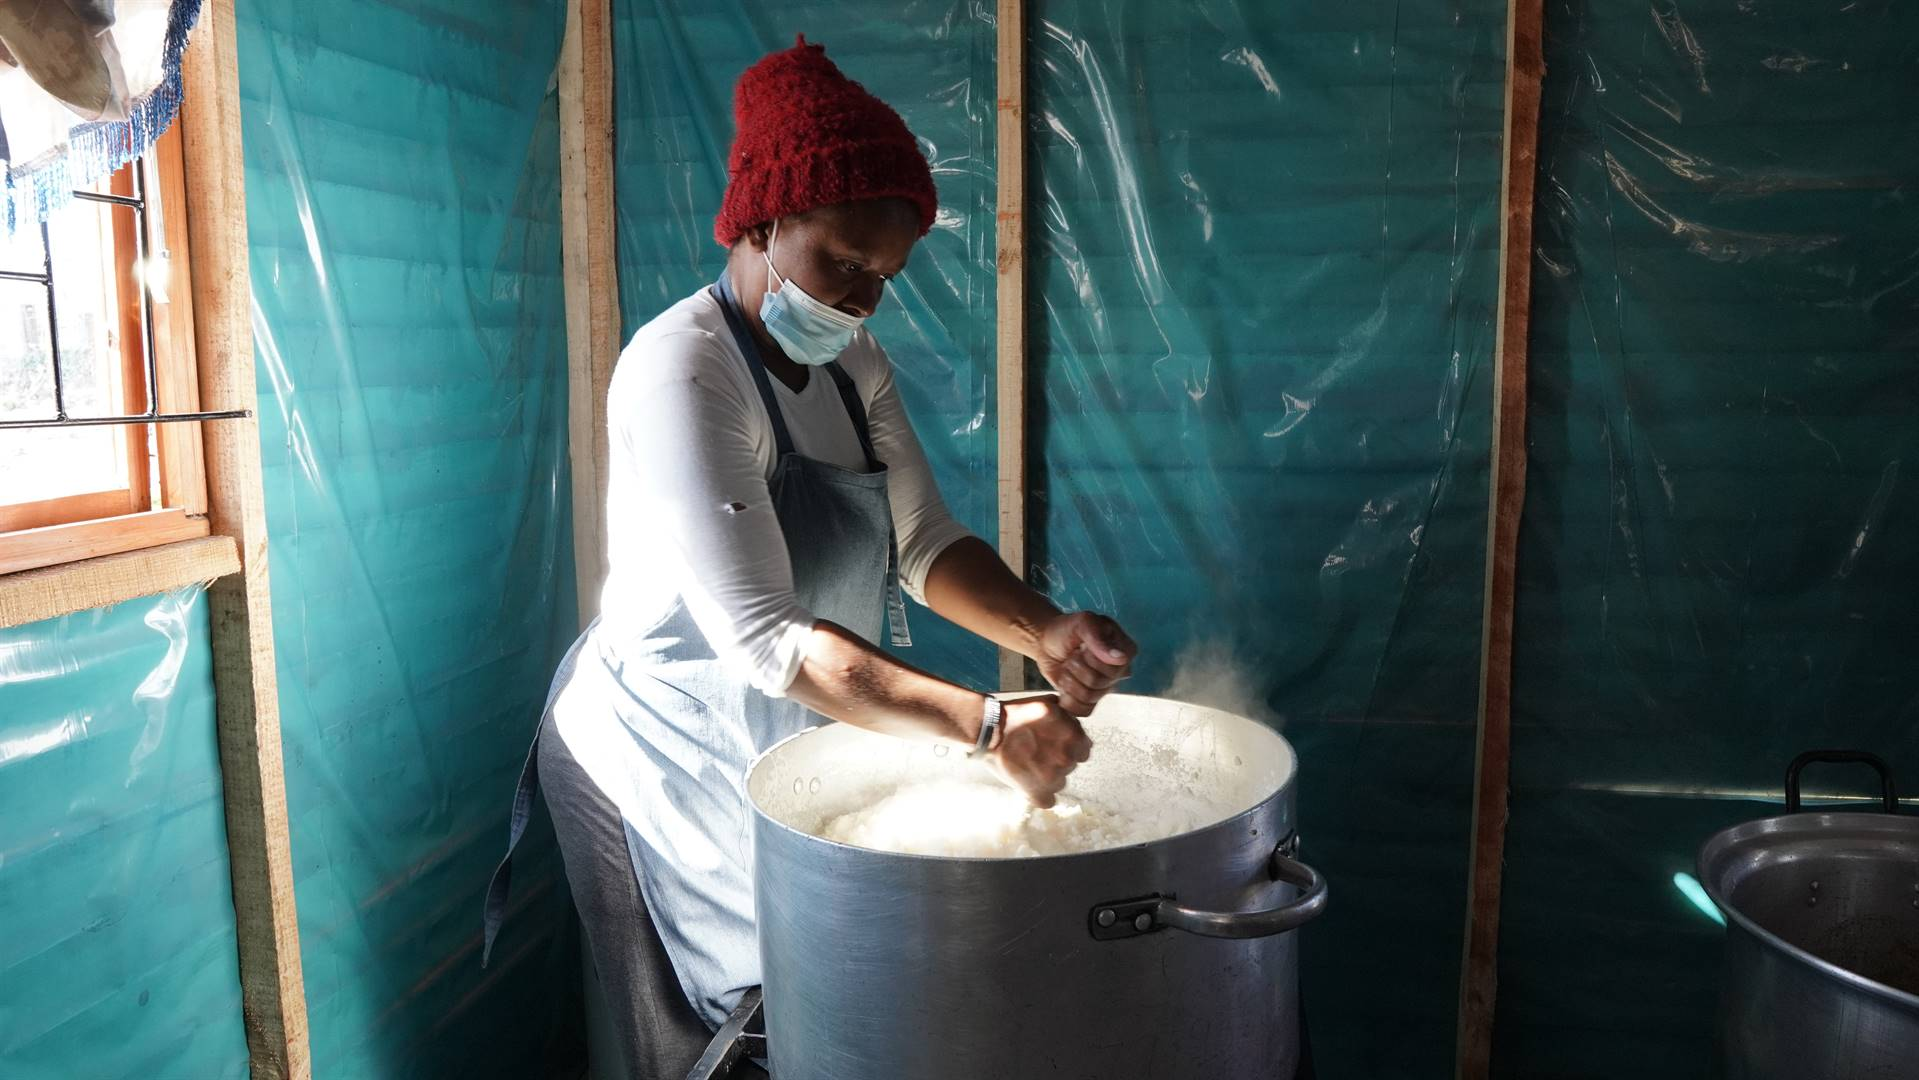 Tamara Mlumbi has called on government to assist people like her who are doing their best to provide food to those in need. Photo: Supplied